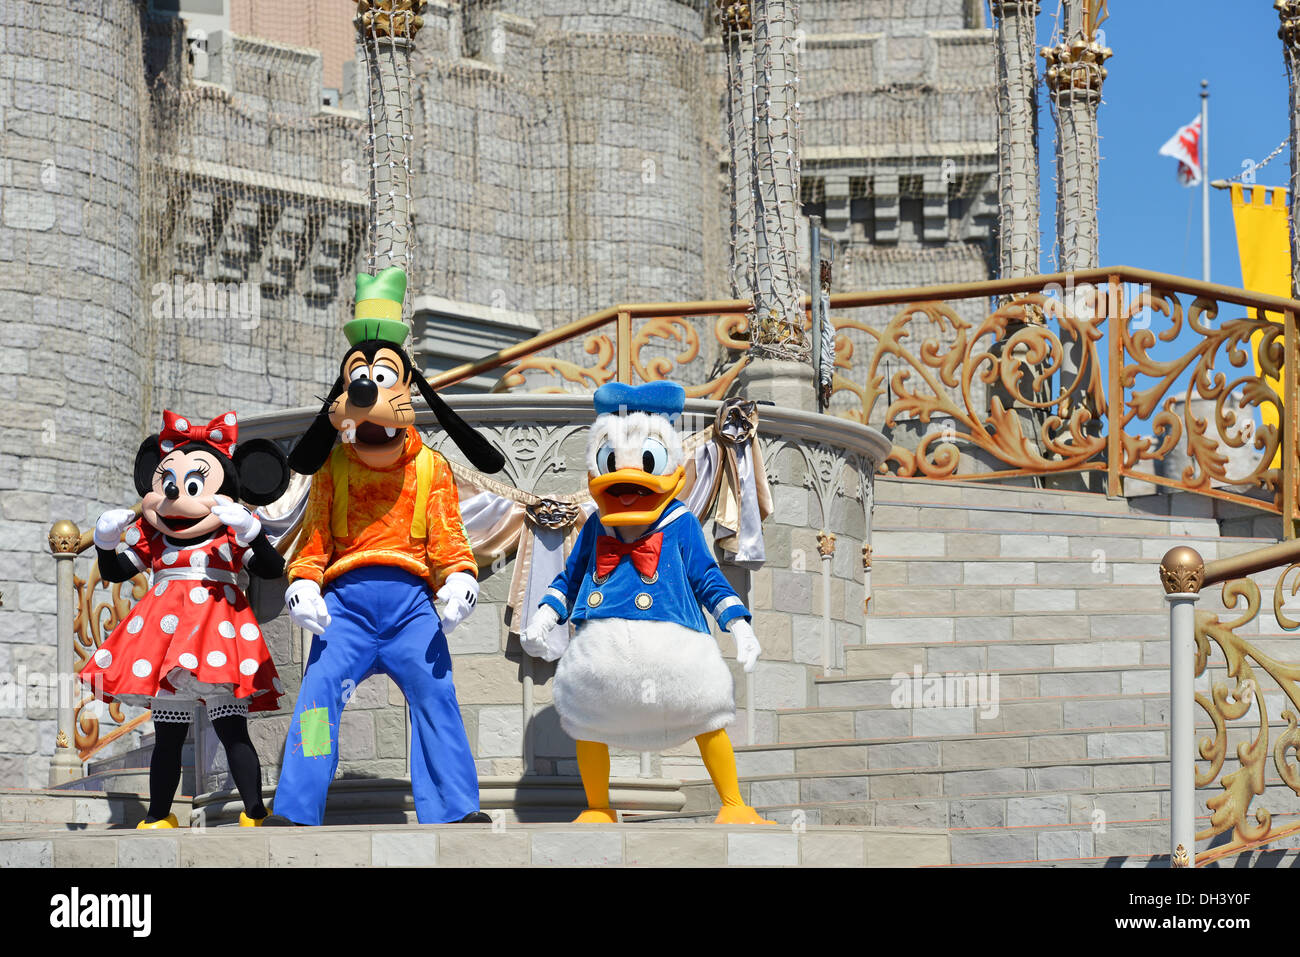 Minnie Mouse Goofy Donald Duck on Stage, Dream Along Show, Cinderella Castle, Magic Kingdom, Disney World, Orlando Florida - Stock Image